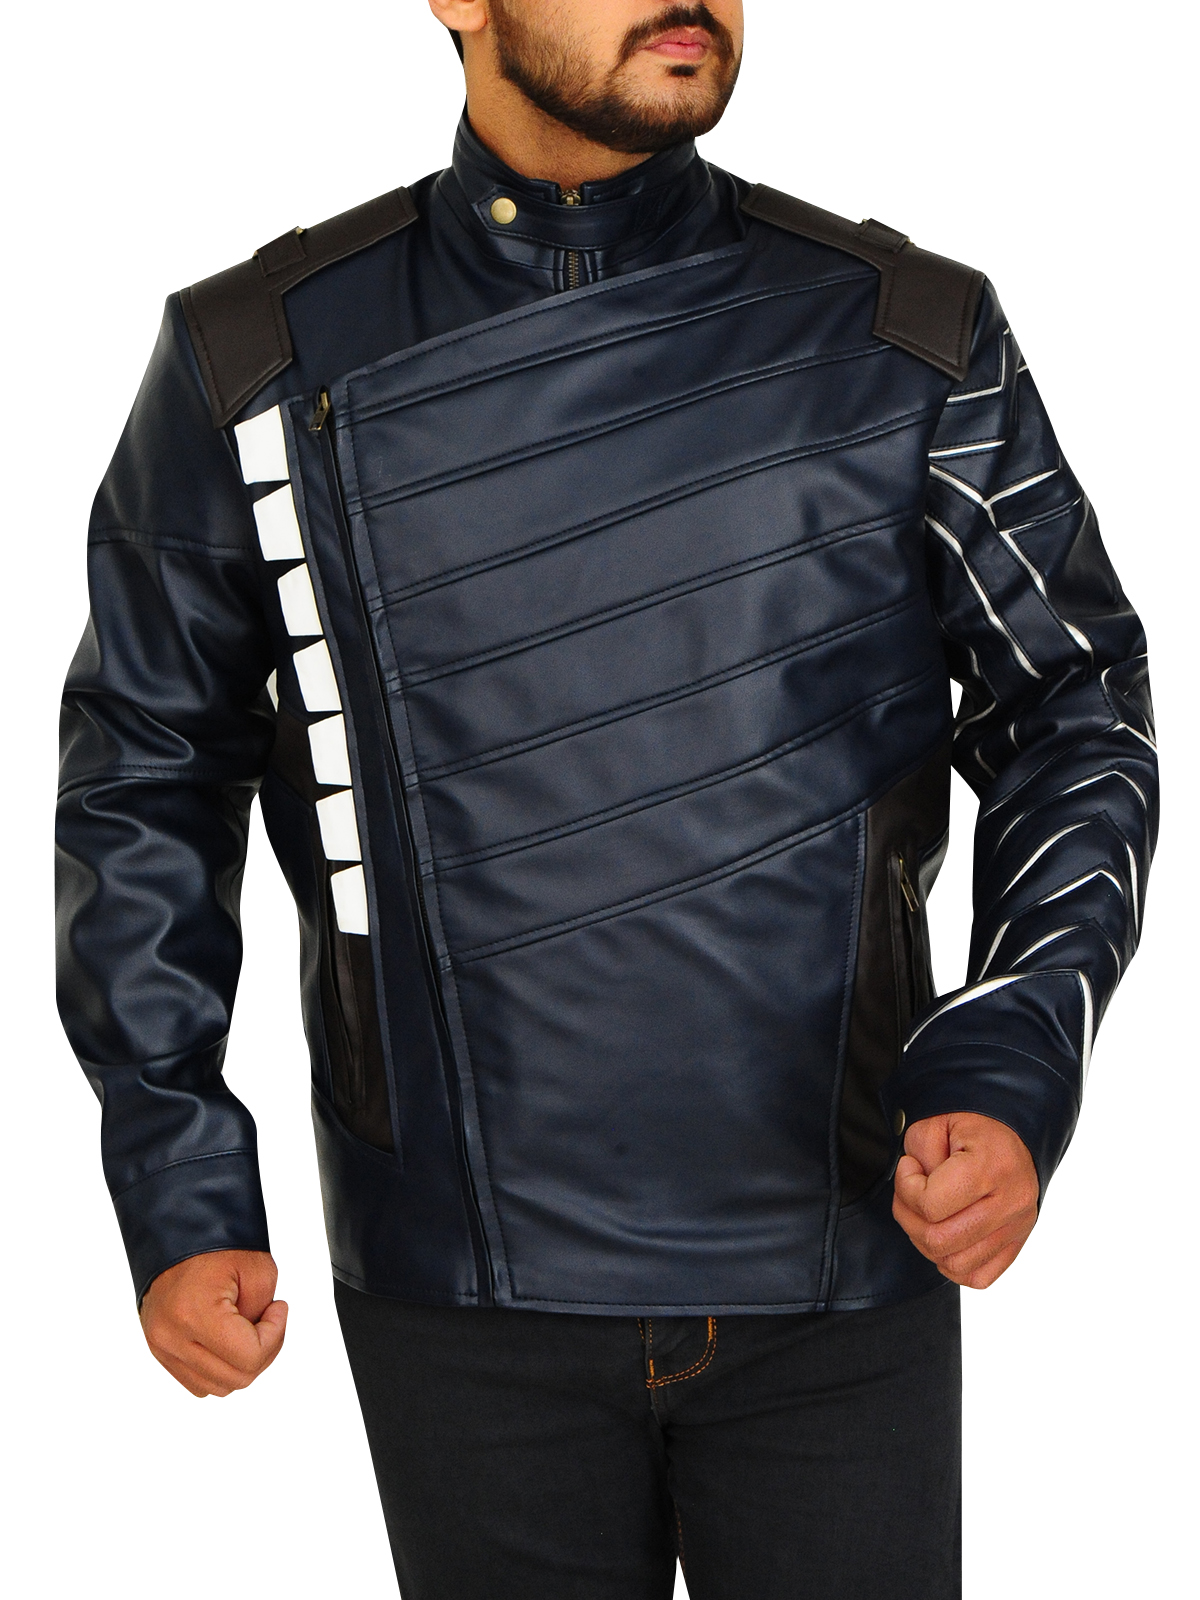 Avengers Infinity War Winter Soldier Jacket